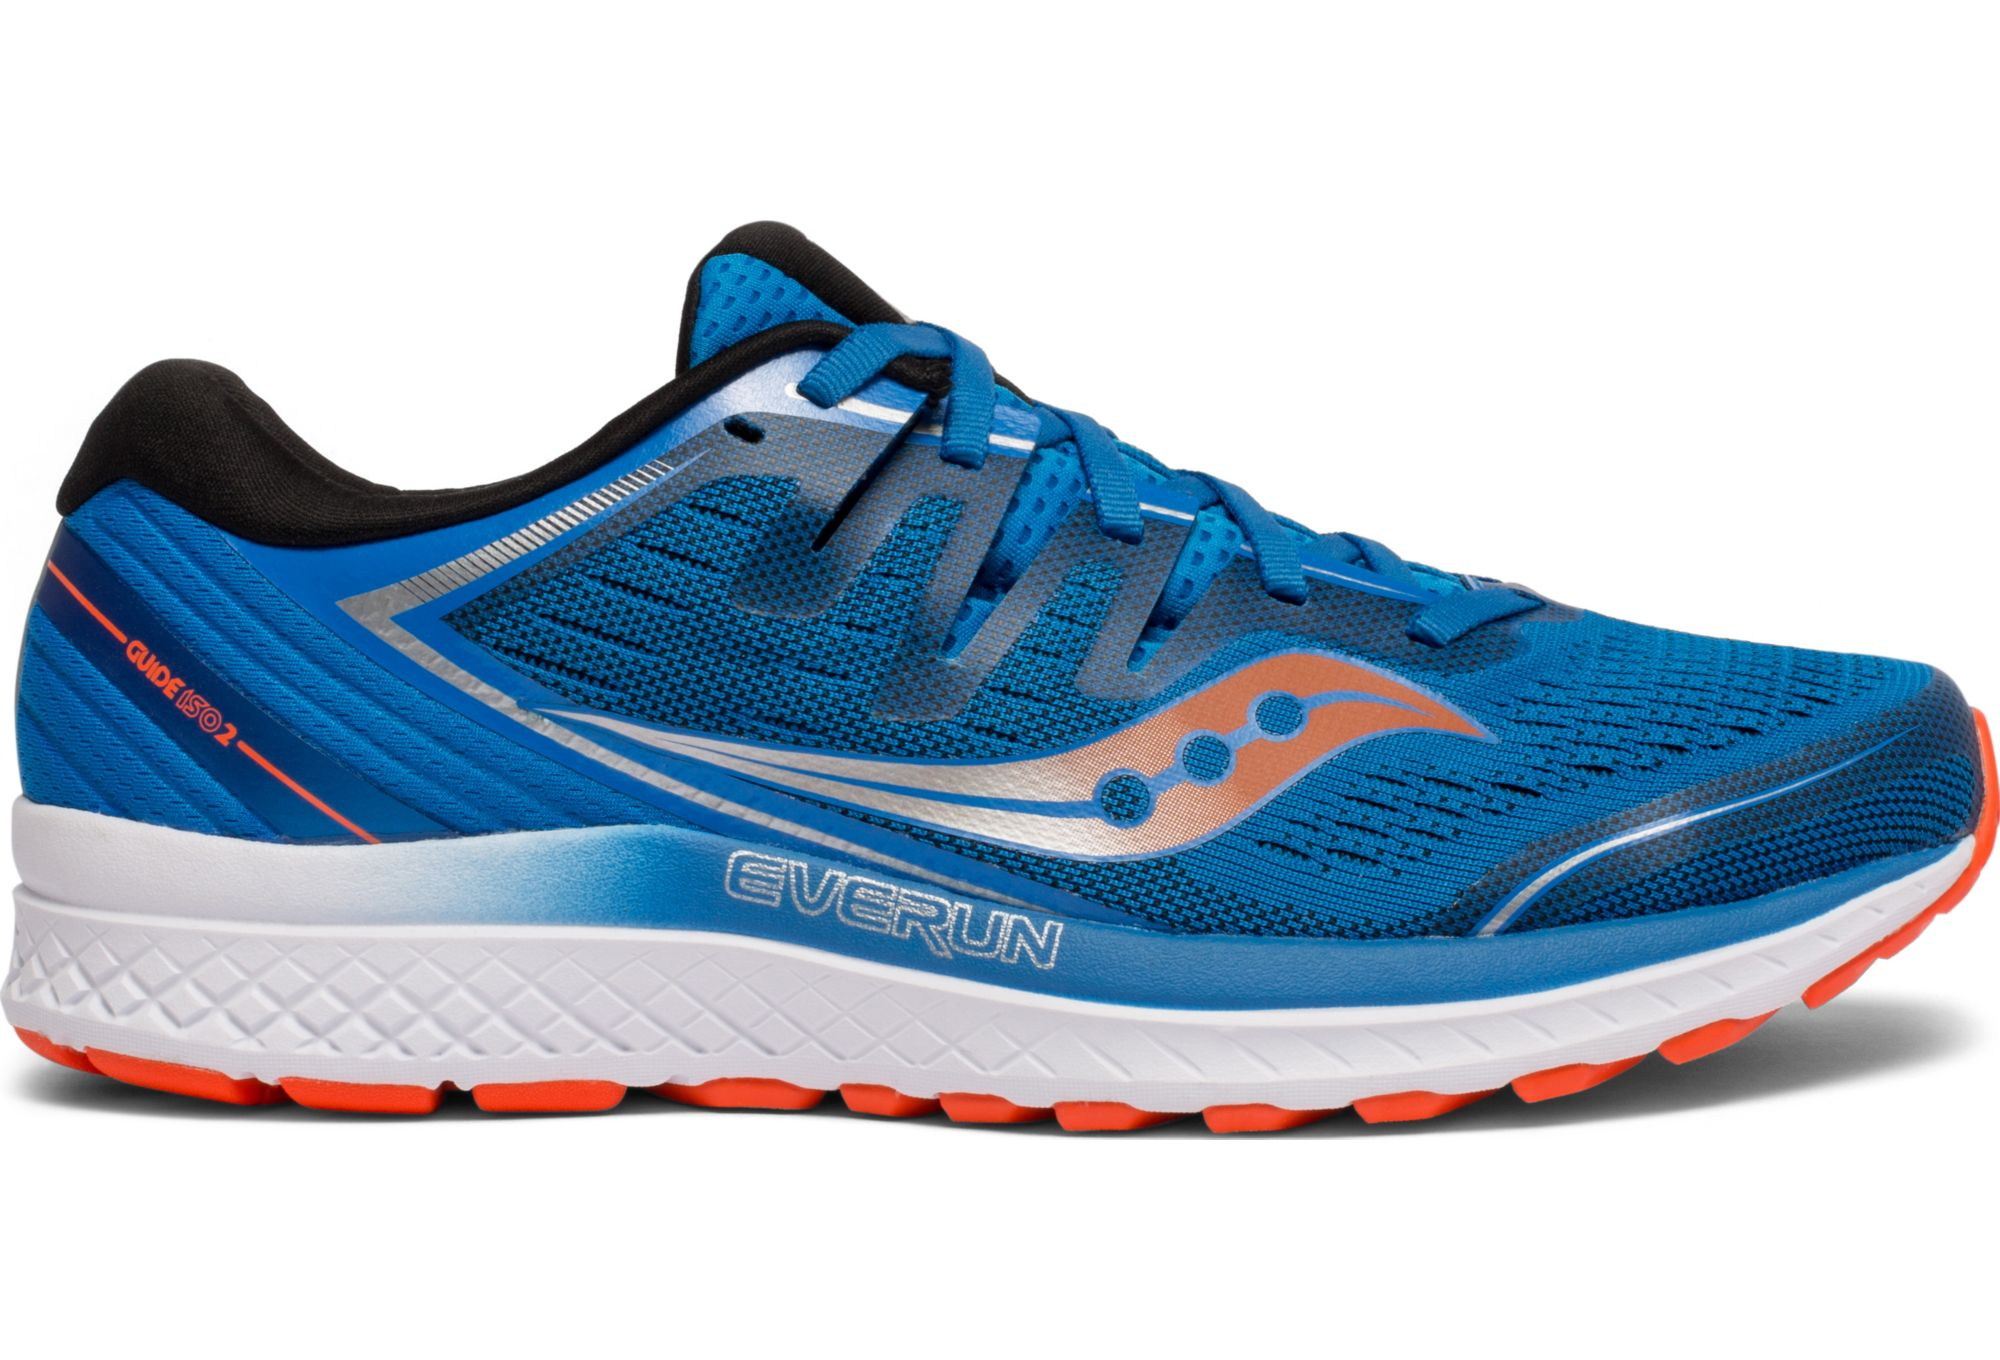 Saucony Guide Iso 2 Review